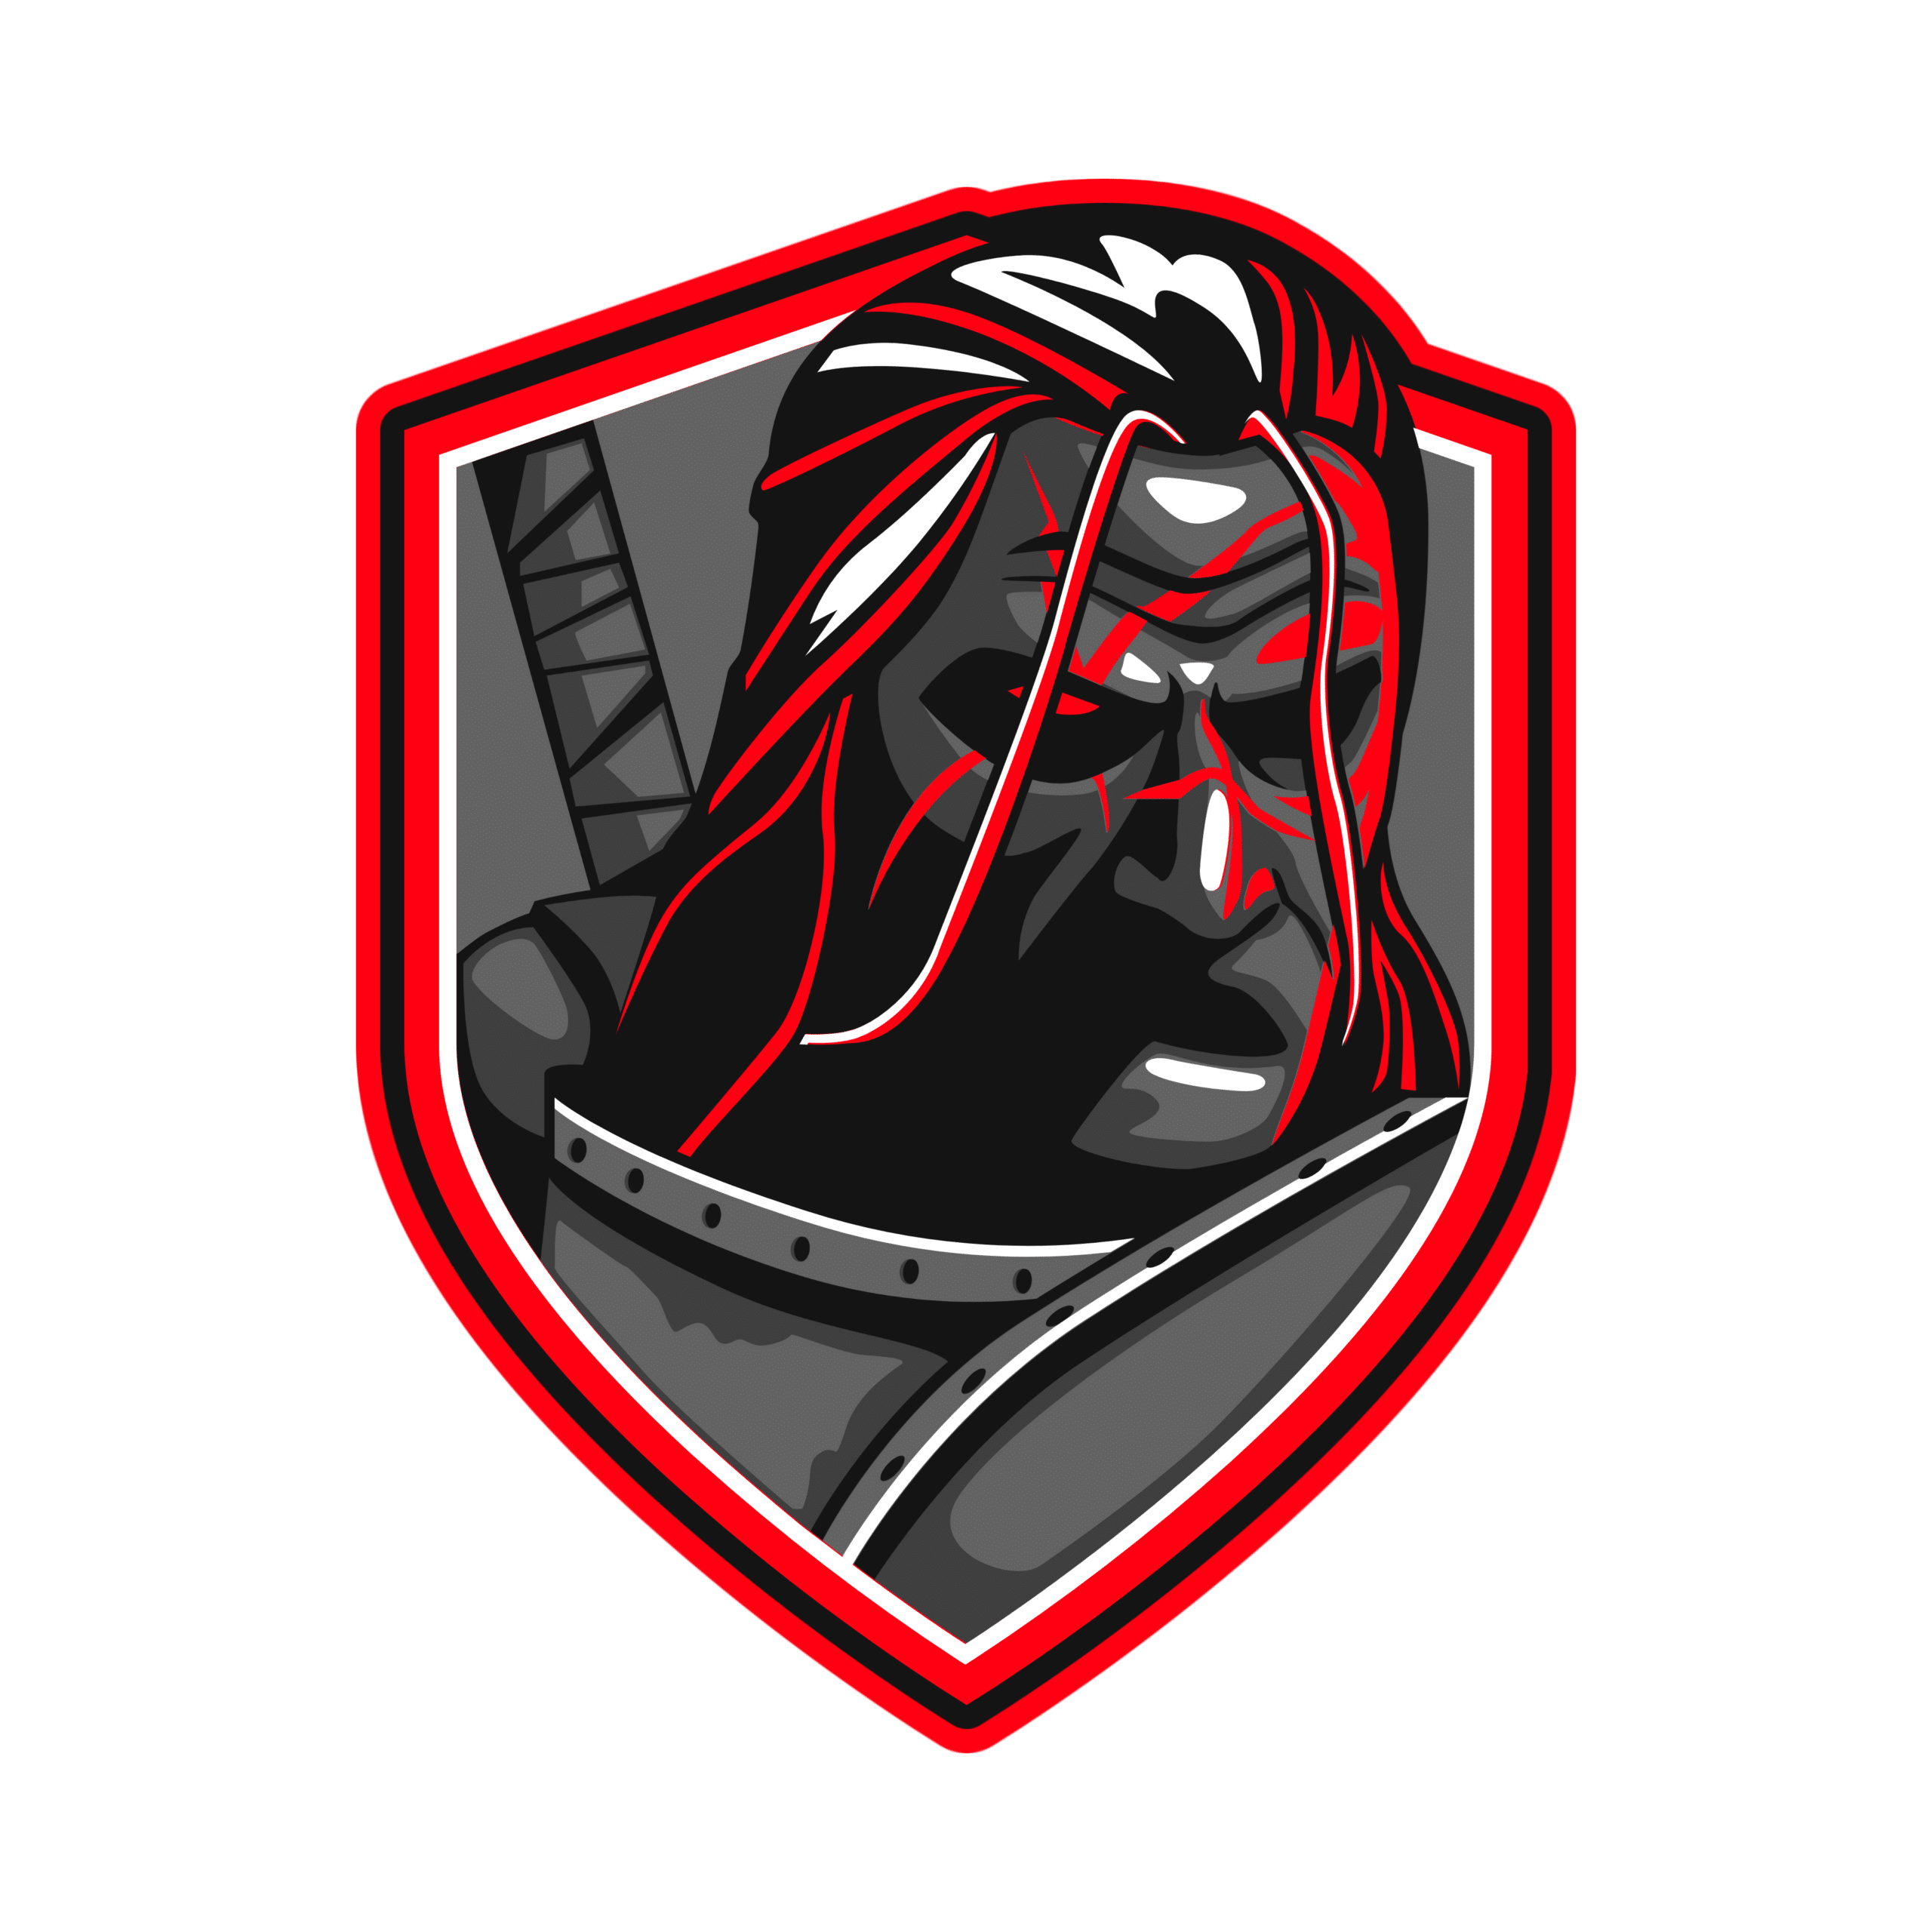 gaming-logo-maker-with-a-tactical-soldier-graphic-inspired-by-rainbow-six-siege-2653c (4)